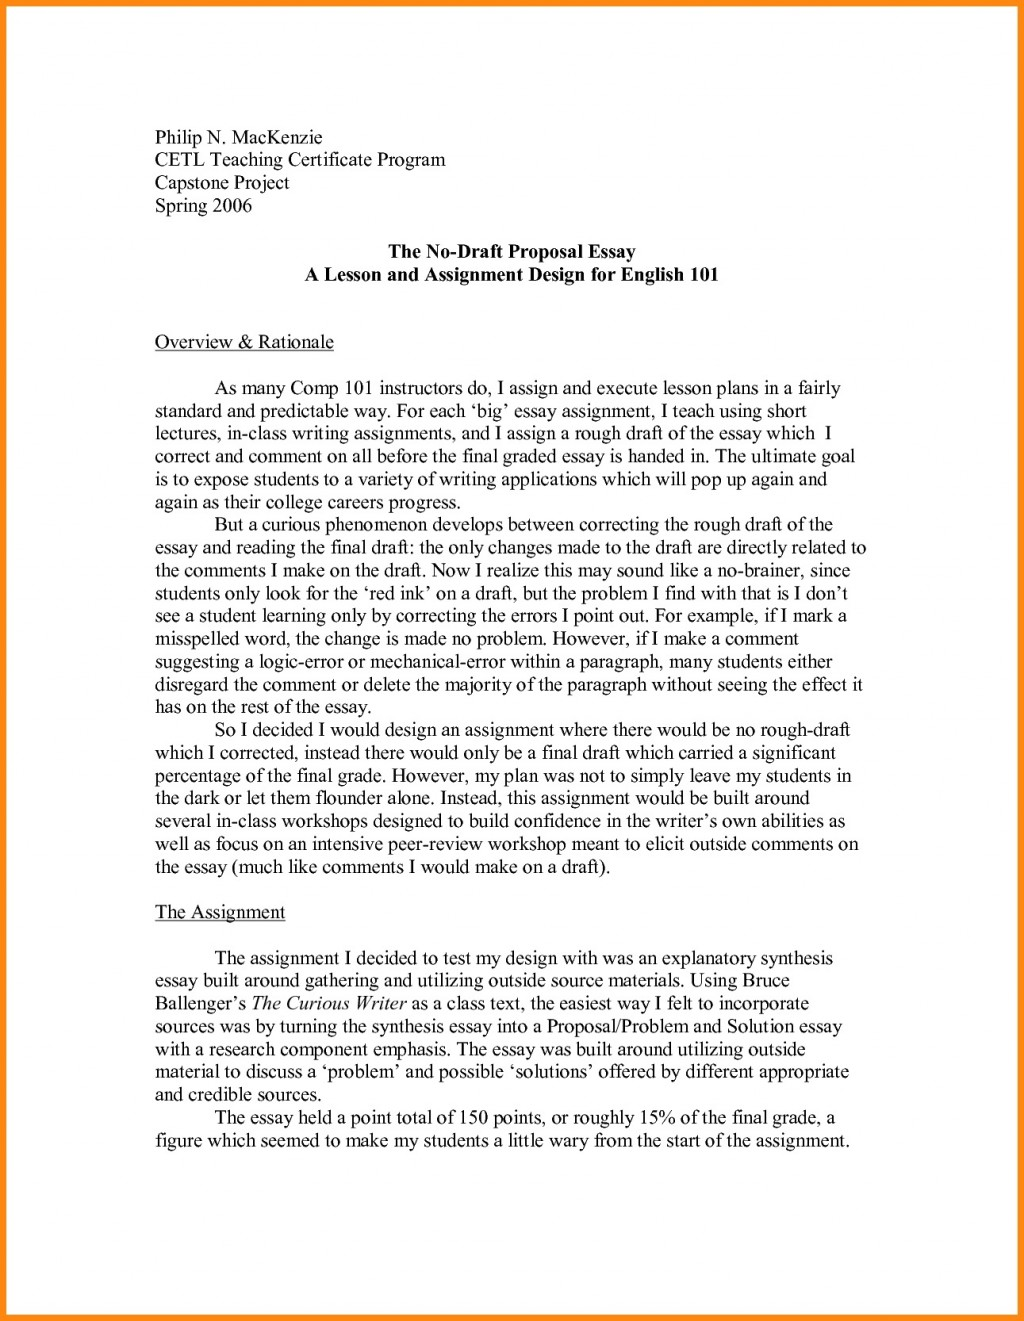 019 Research Paper Papers Topics For Finance Topic Proposal Example Essay At Phenomenal High School Students About Elementary Education Hot In Computer Science Large